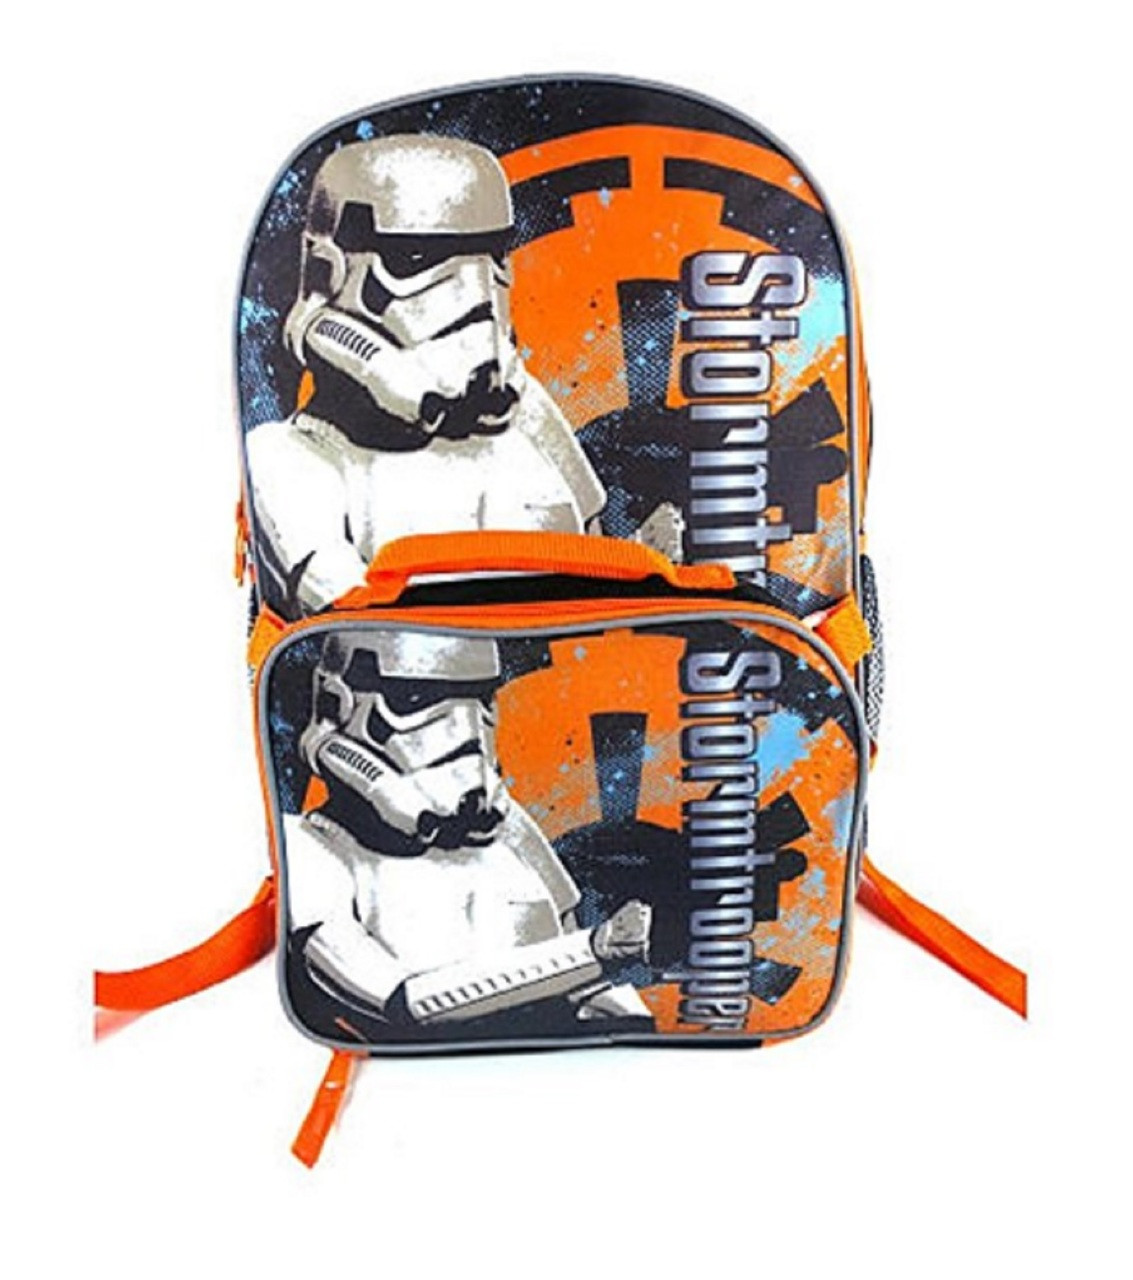 Star Wars Large Backpack with Detachable Lunch Box - Storm Trooper